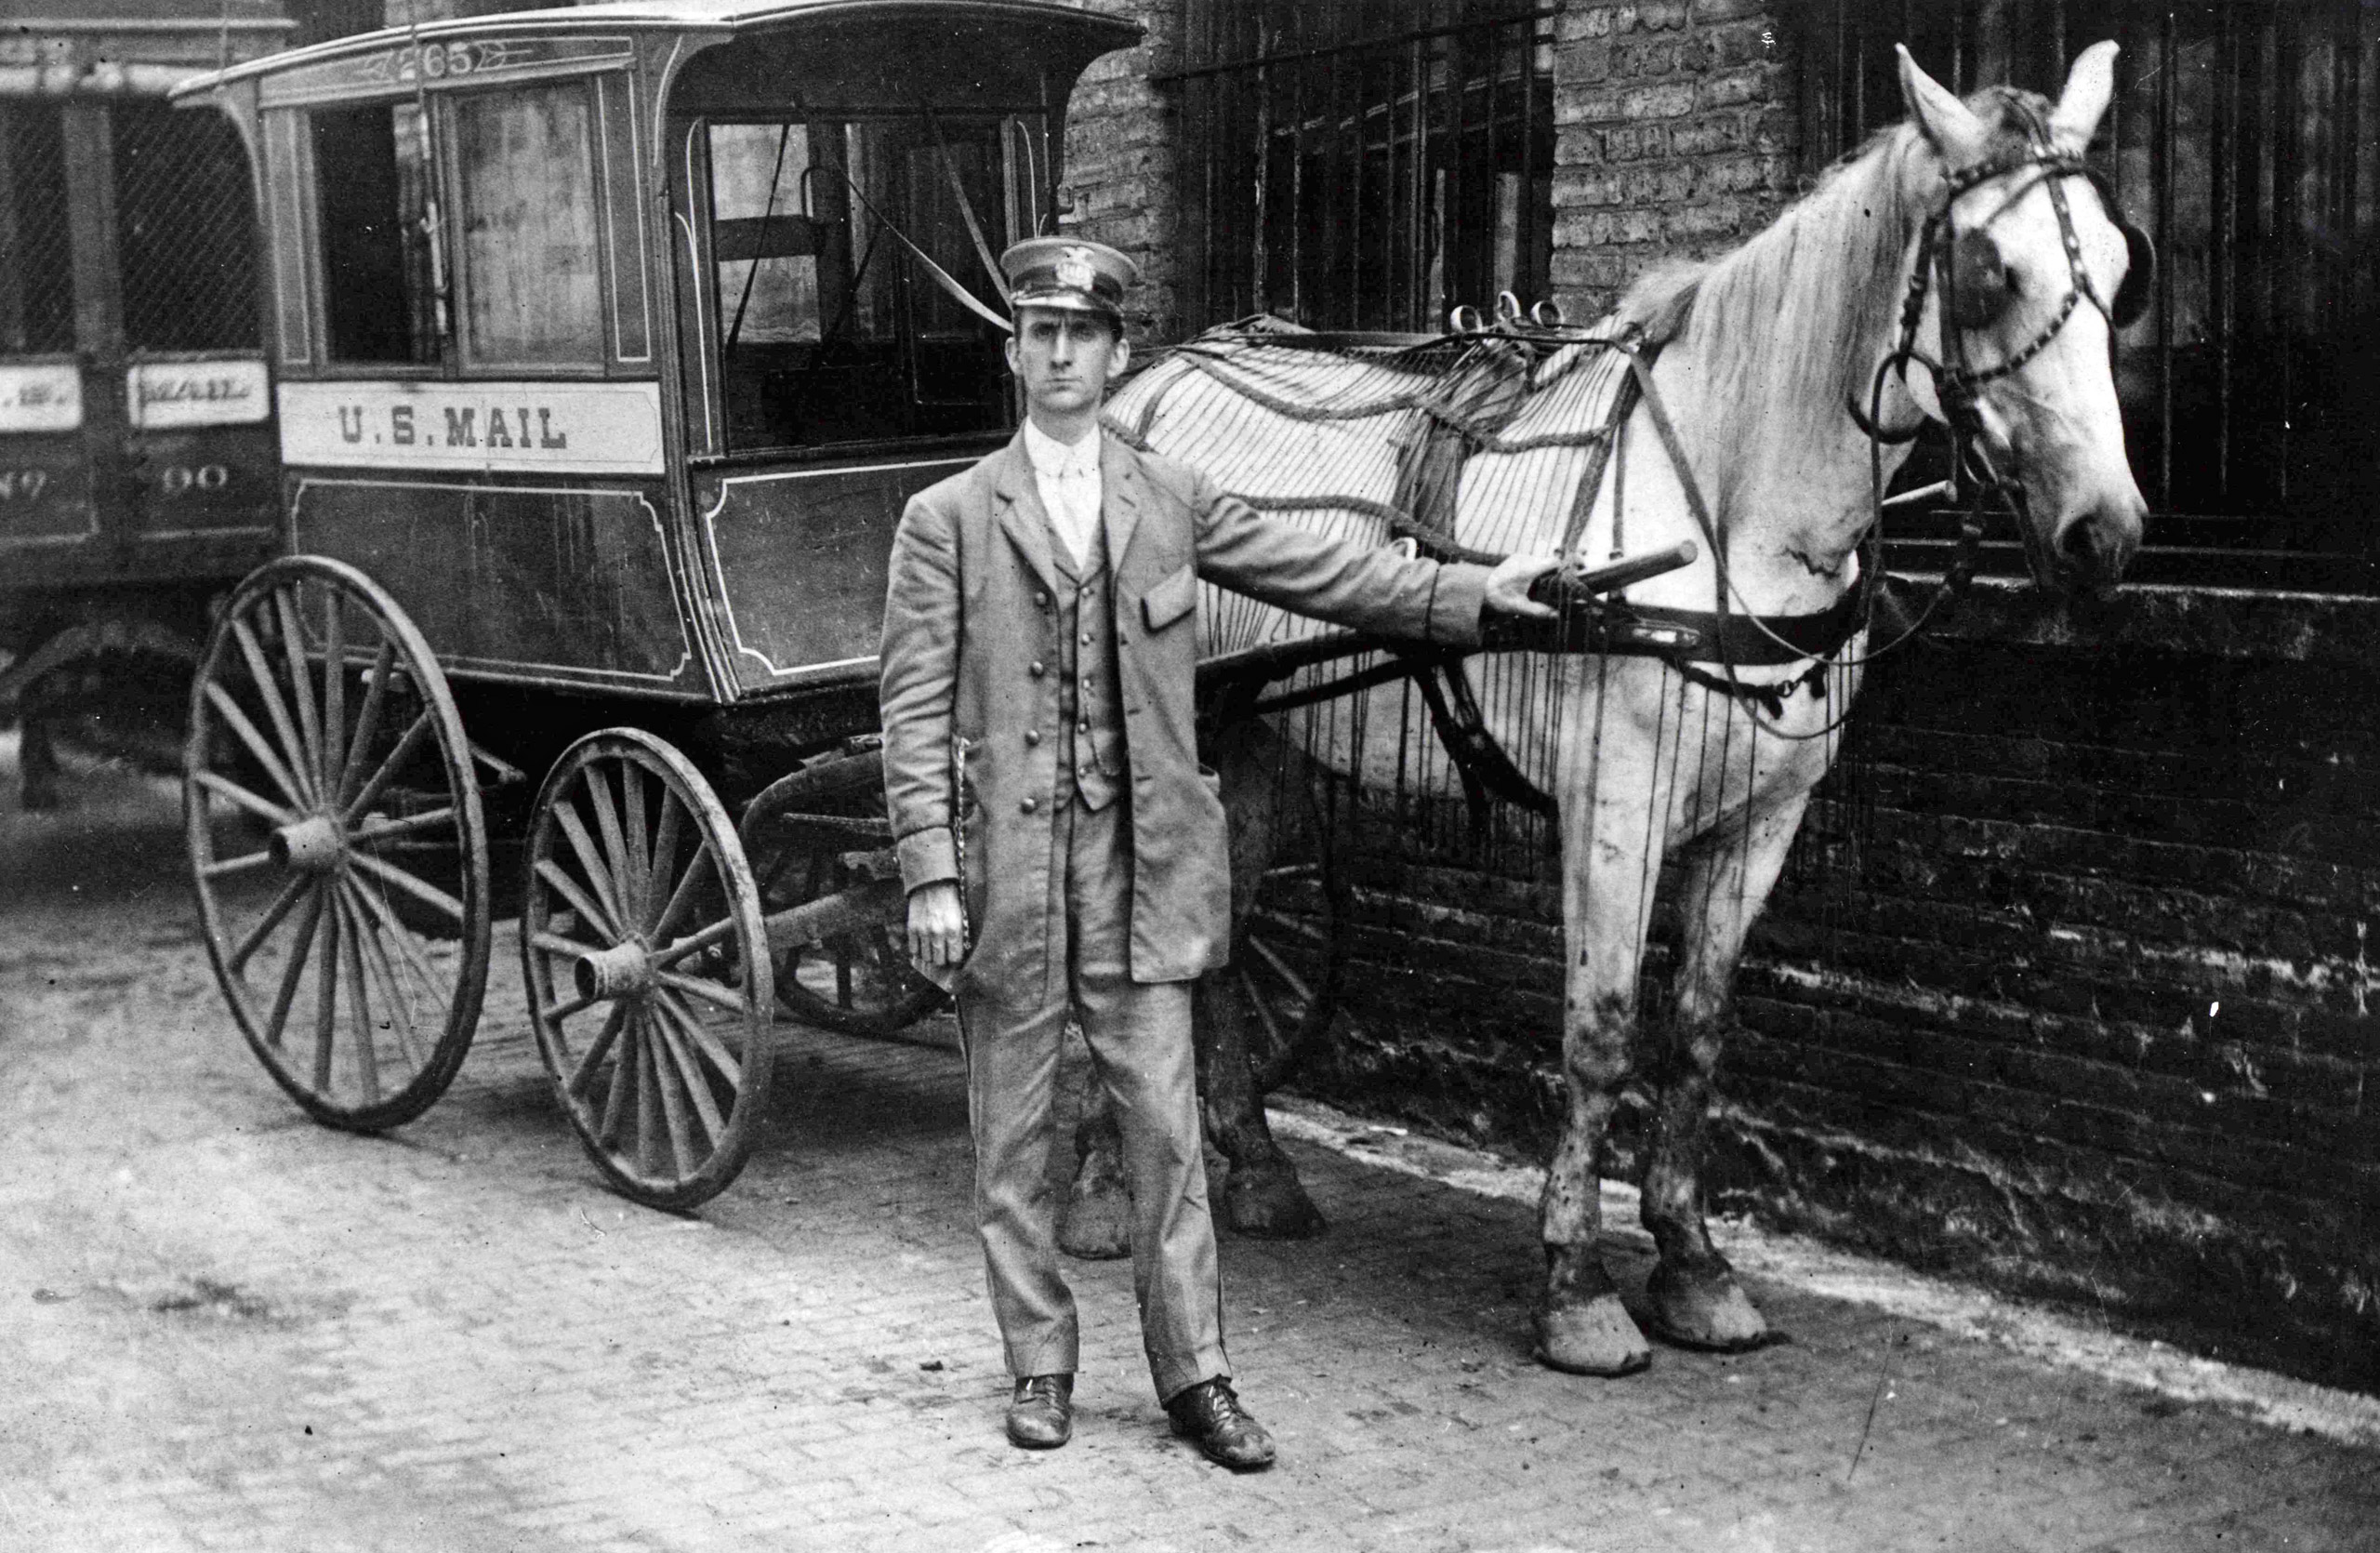 City collection mail wagon manufactured by Studebaker Brothers. The wagon was used to collect mail from sidewalk mailboxes in Chicago, 1890.